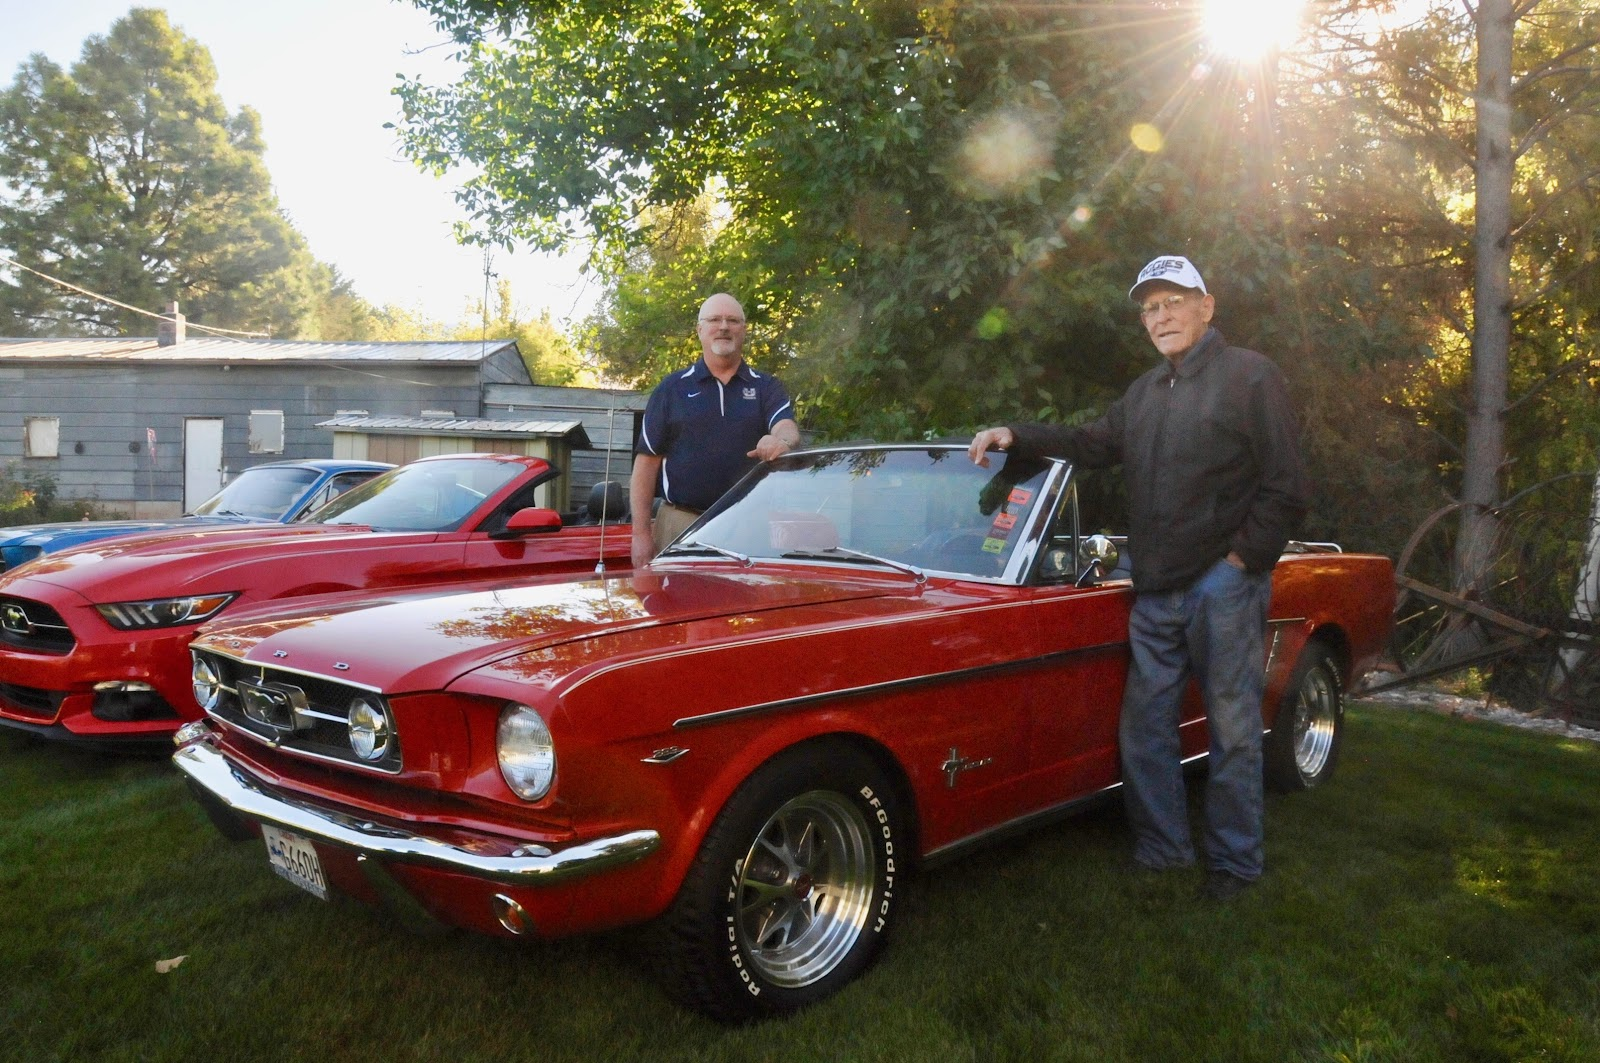 Mike bullen and his father del next to mikes 65 mustang convertible the car has been in the usu homecoming parade almost continually since 1983